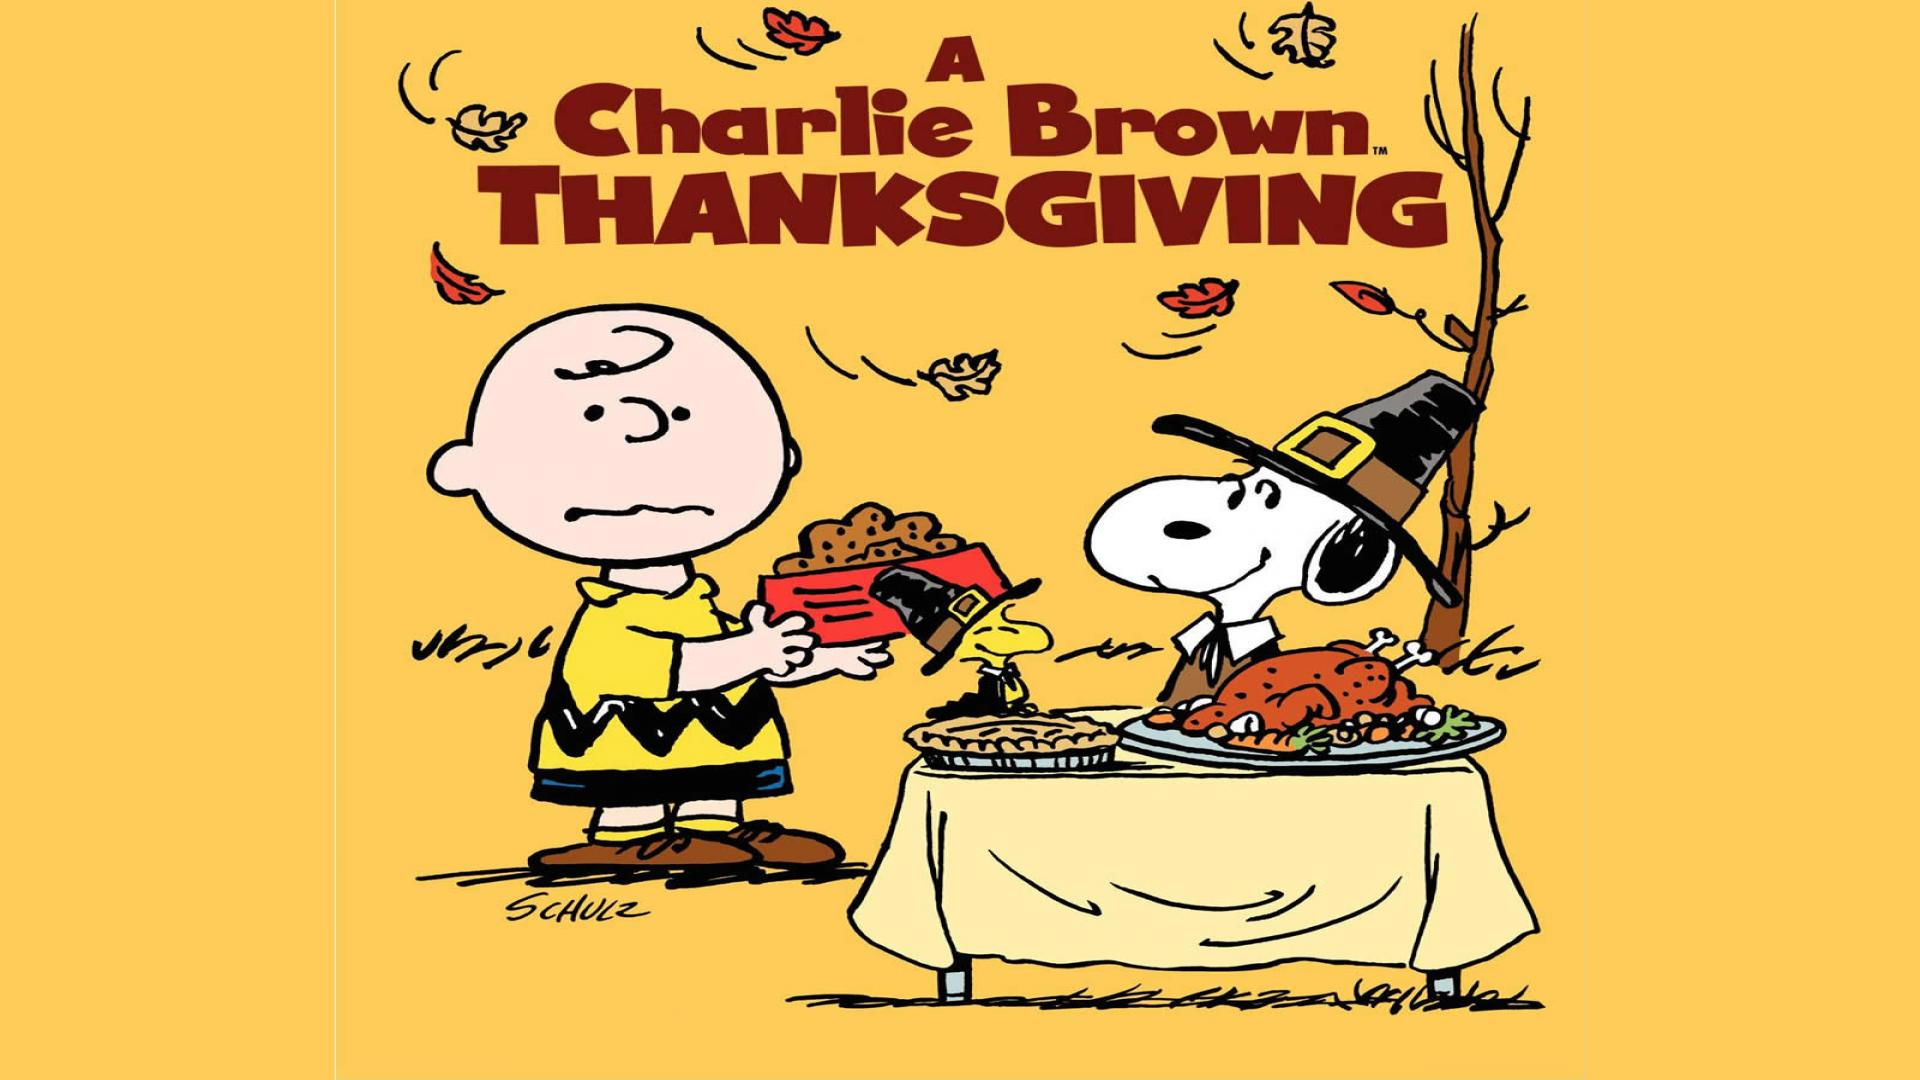 Charlie Brown Thanksgiving Desktop Wallpaper Wallpapersafari